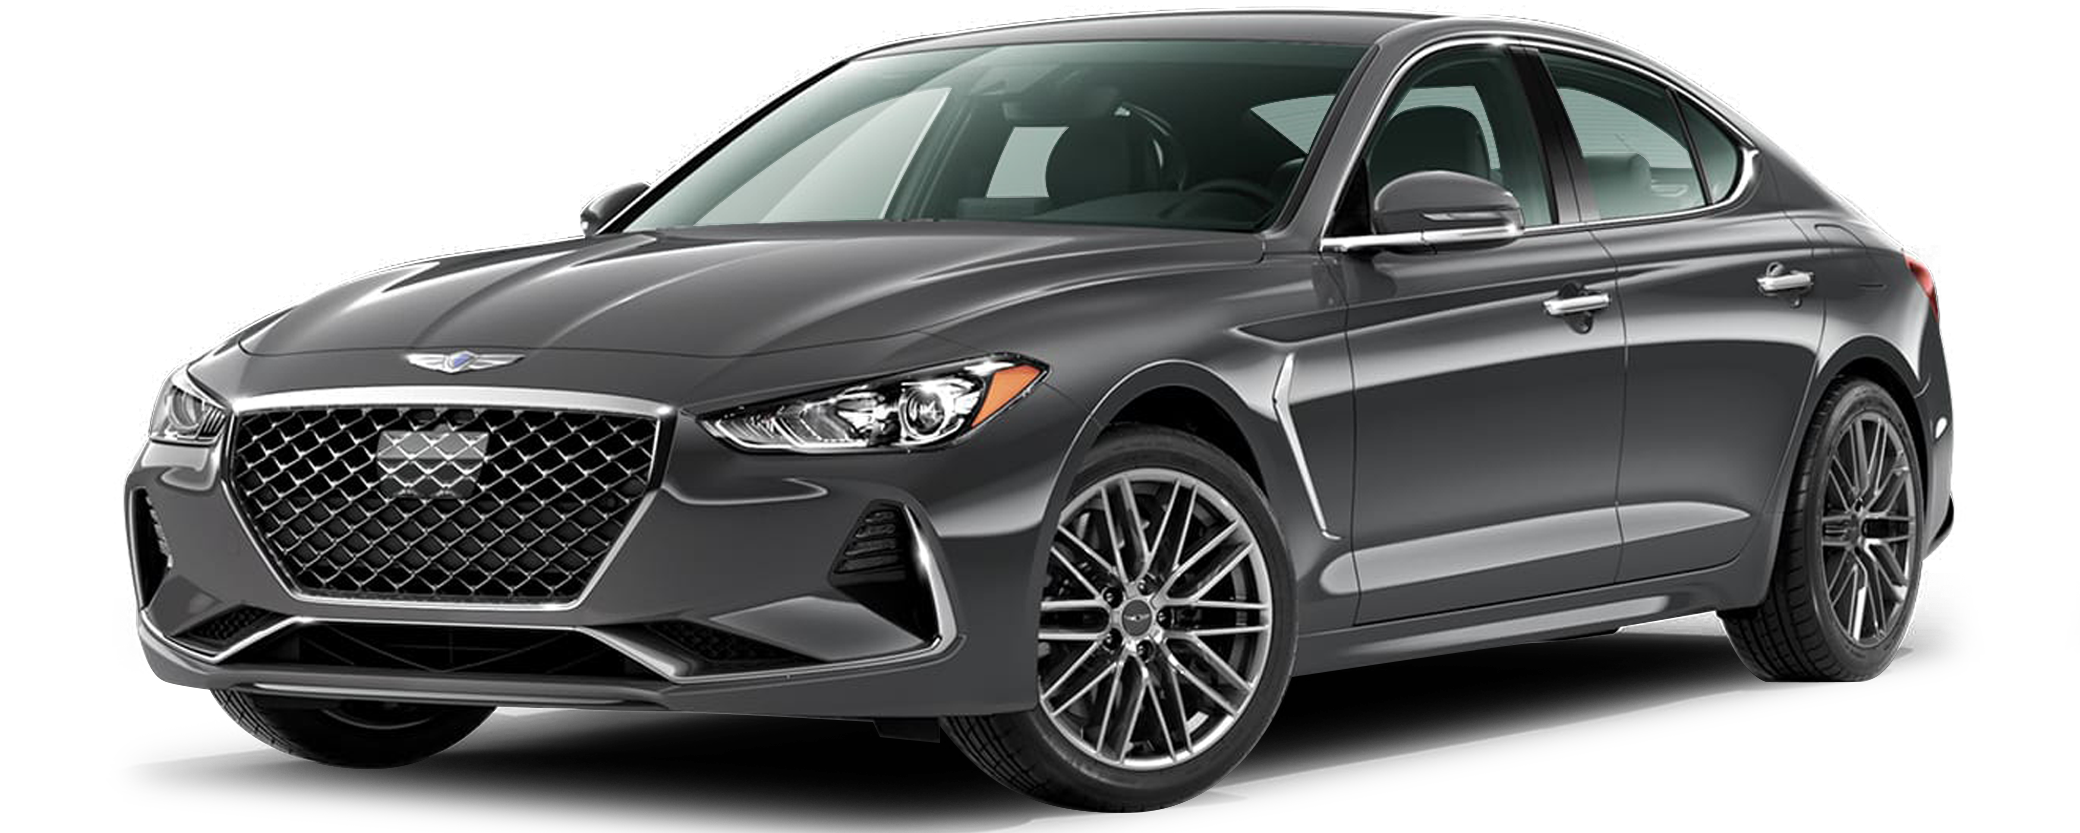 2019 Genesis G70 Sedan 2.0T Advanced